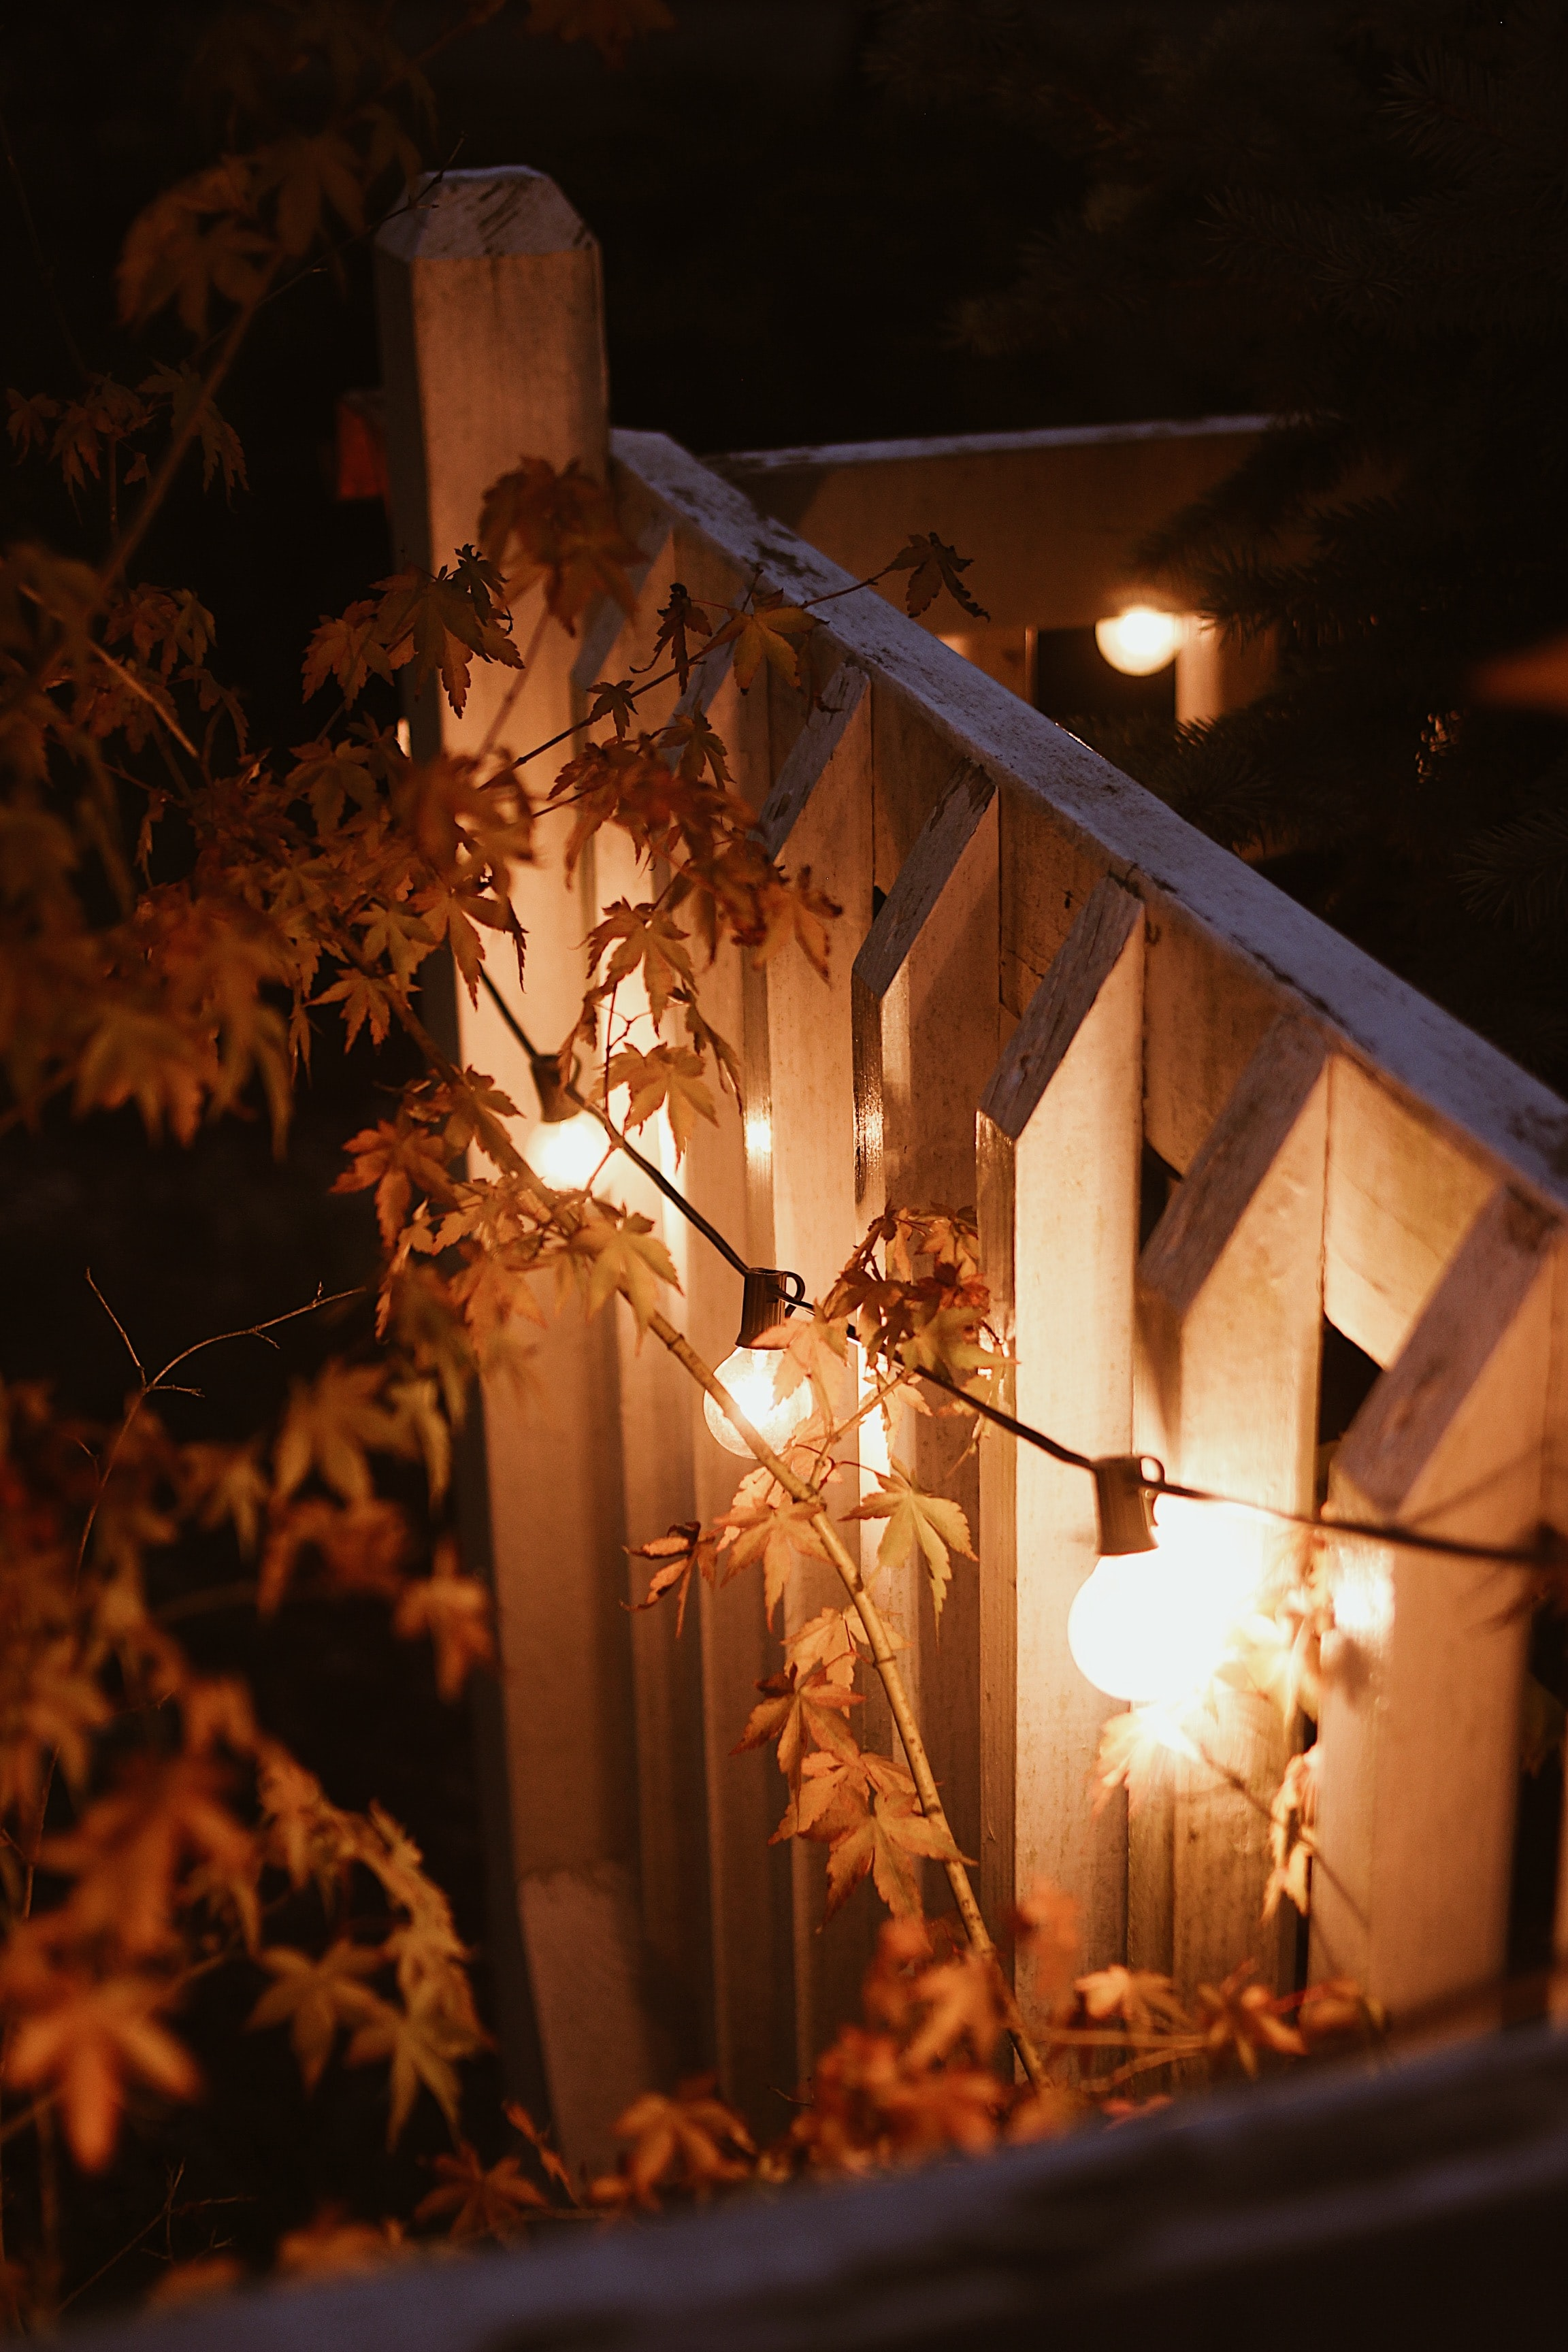 104103 download wallpaper Miscellanea, Miscellaneous, Garland, Lamps, Lamp, Glow, Branches, Evening screensavers and pictures for free